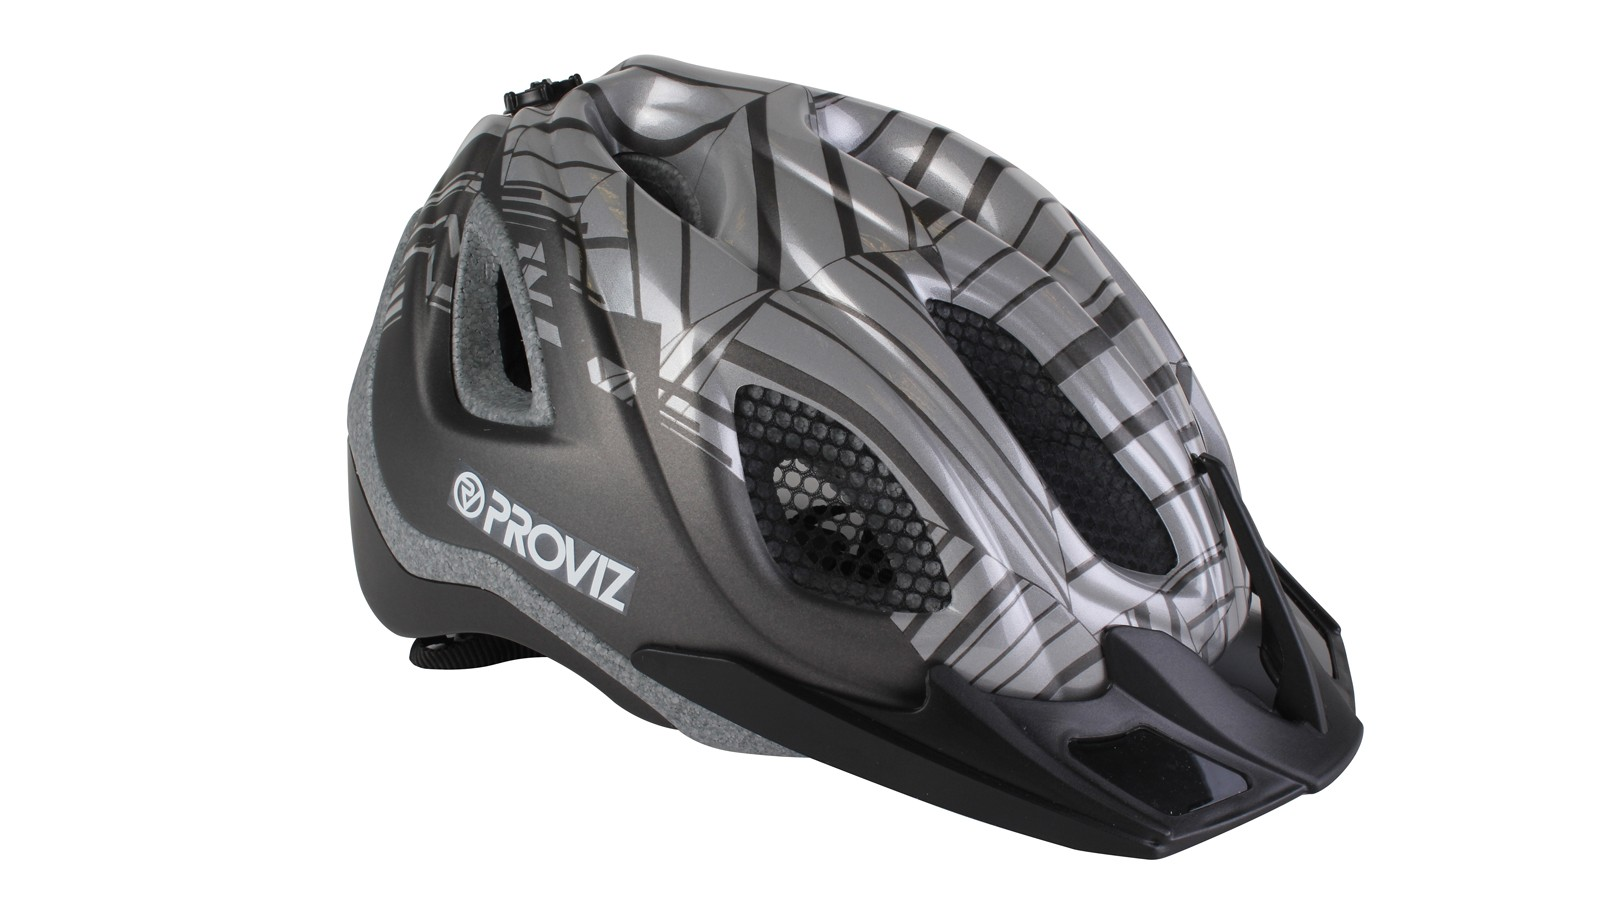 Without a direct light source the reflective part of the helmet shell appears a casual shade of grey